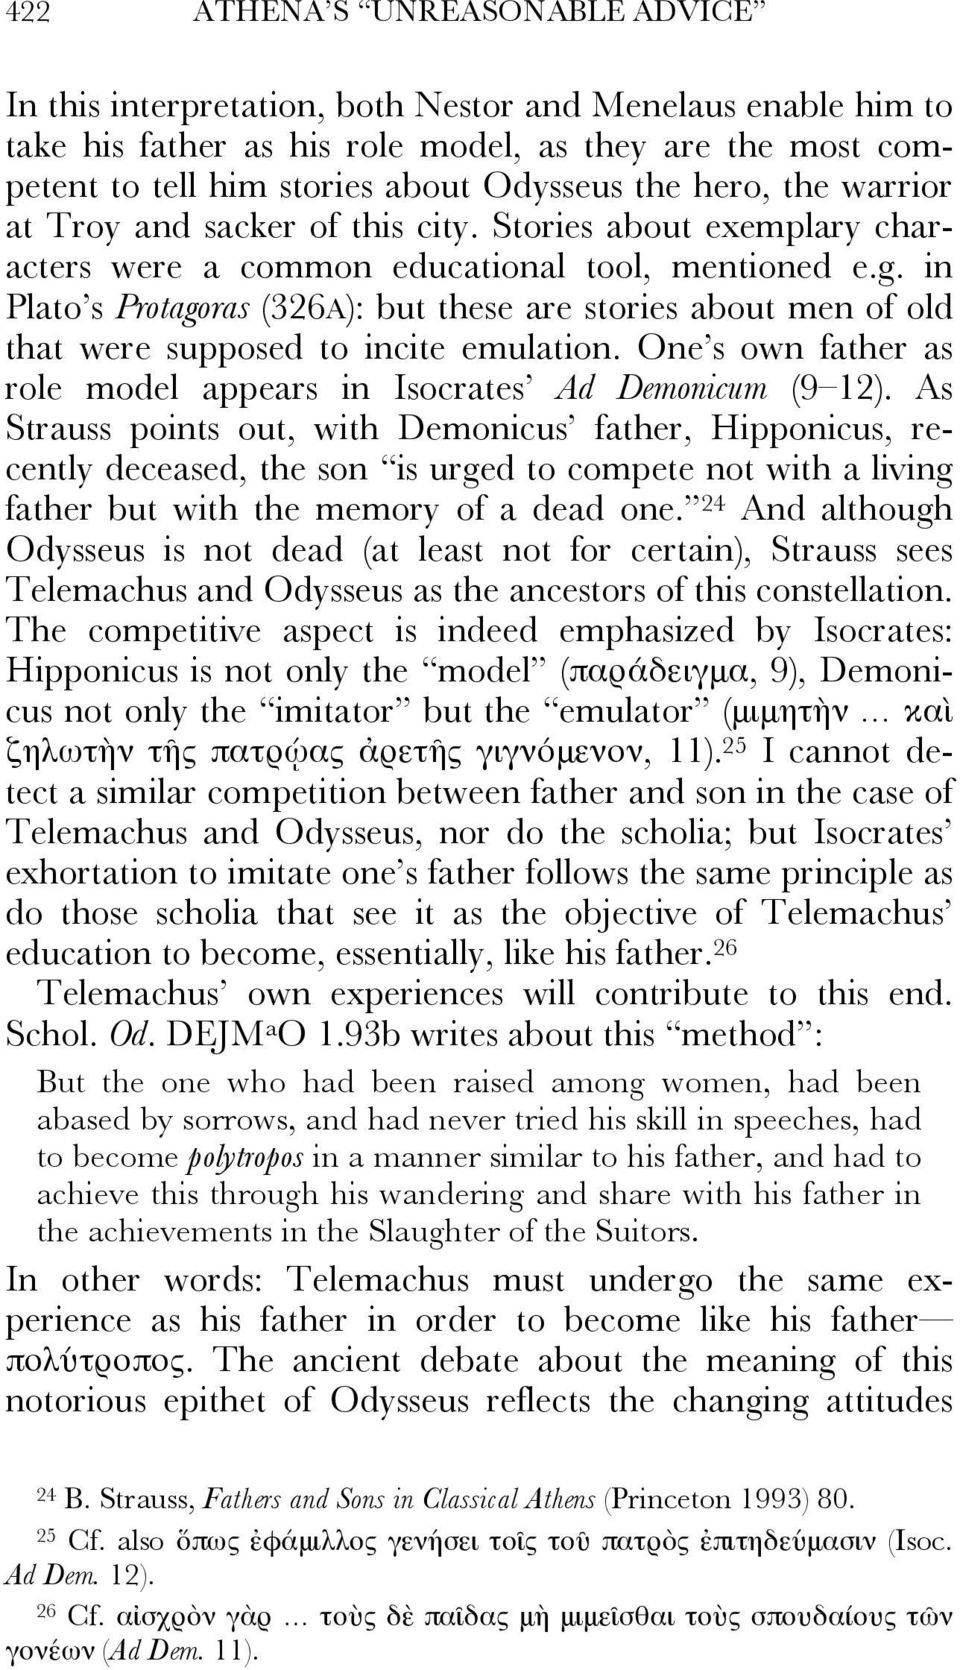 in Plato s Protagoras (326A): but these are stories about men of old that were supposed to incite emulation. One s own father as role model appears in Isocrates Ad Demonicum (9 12).